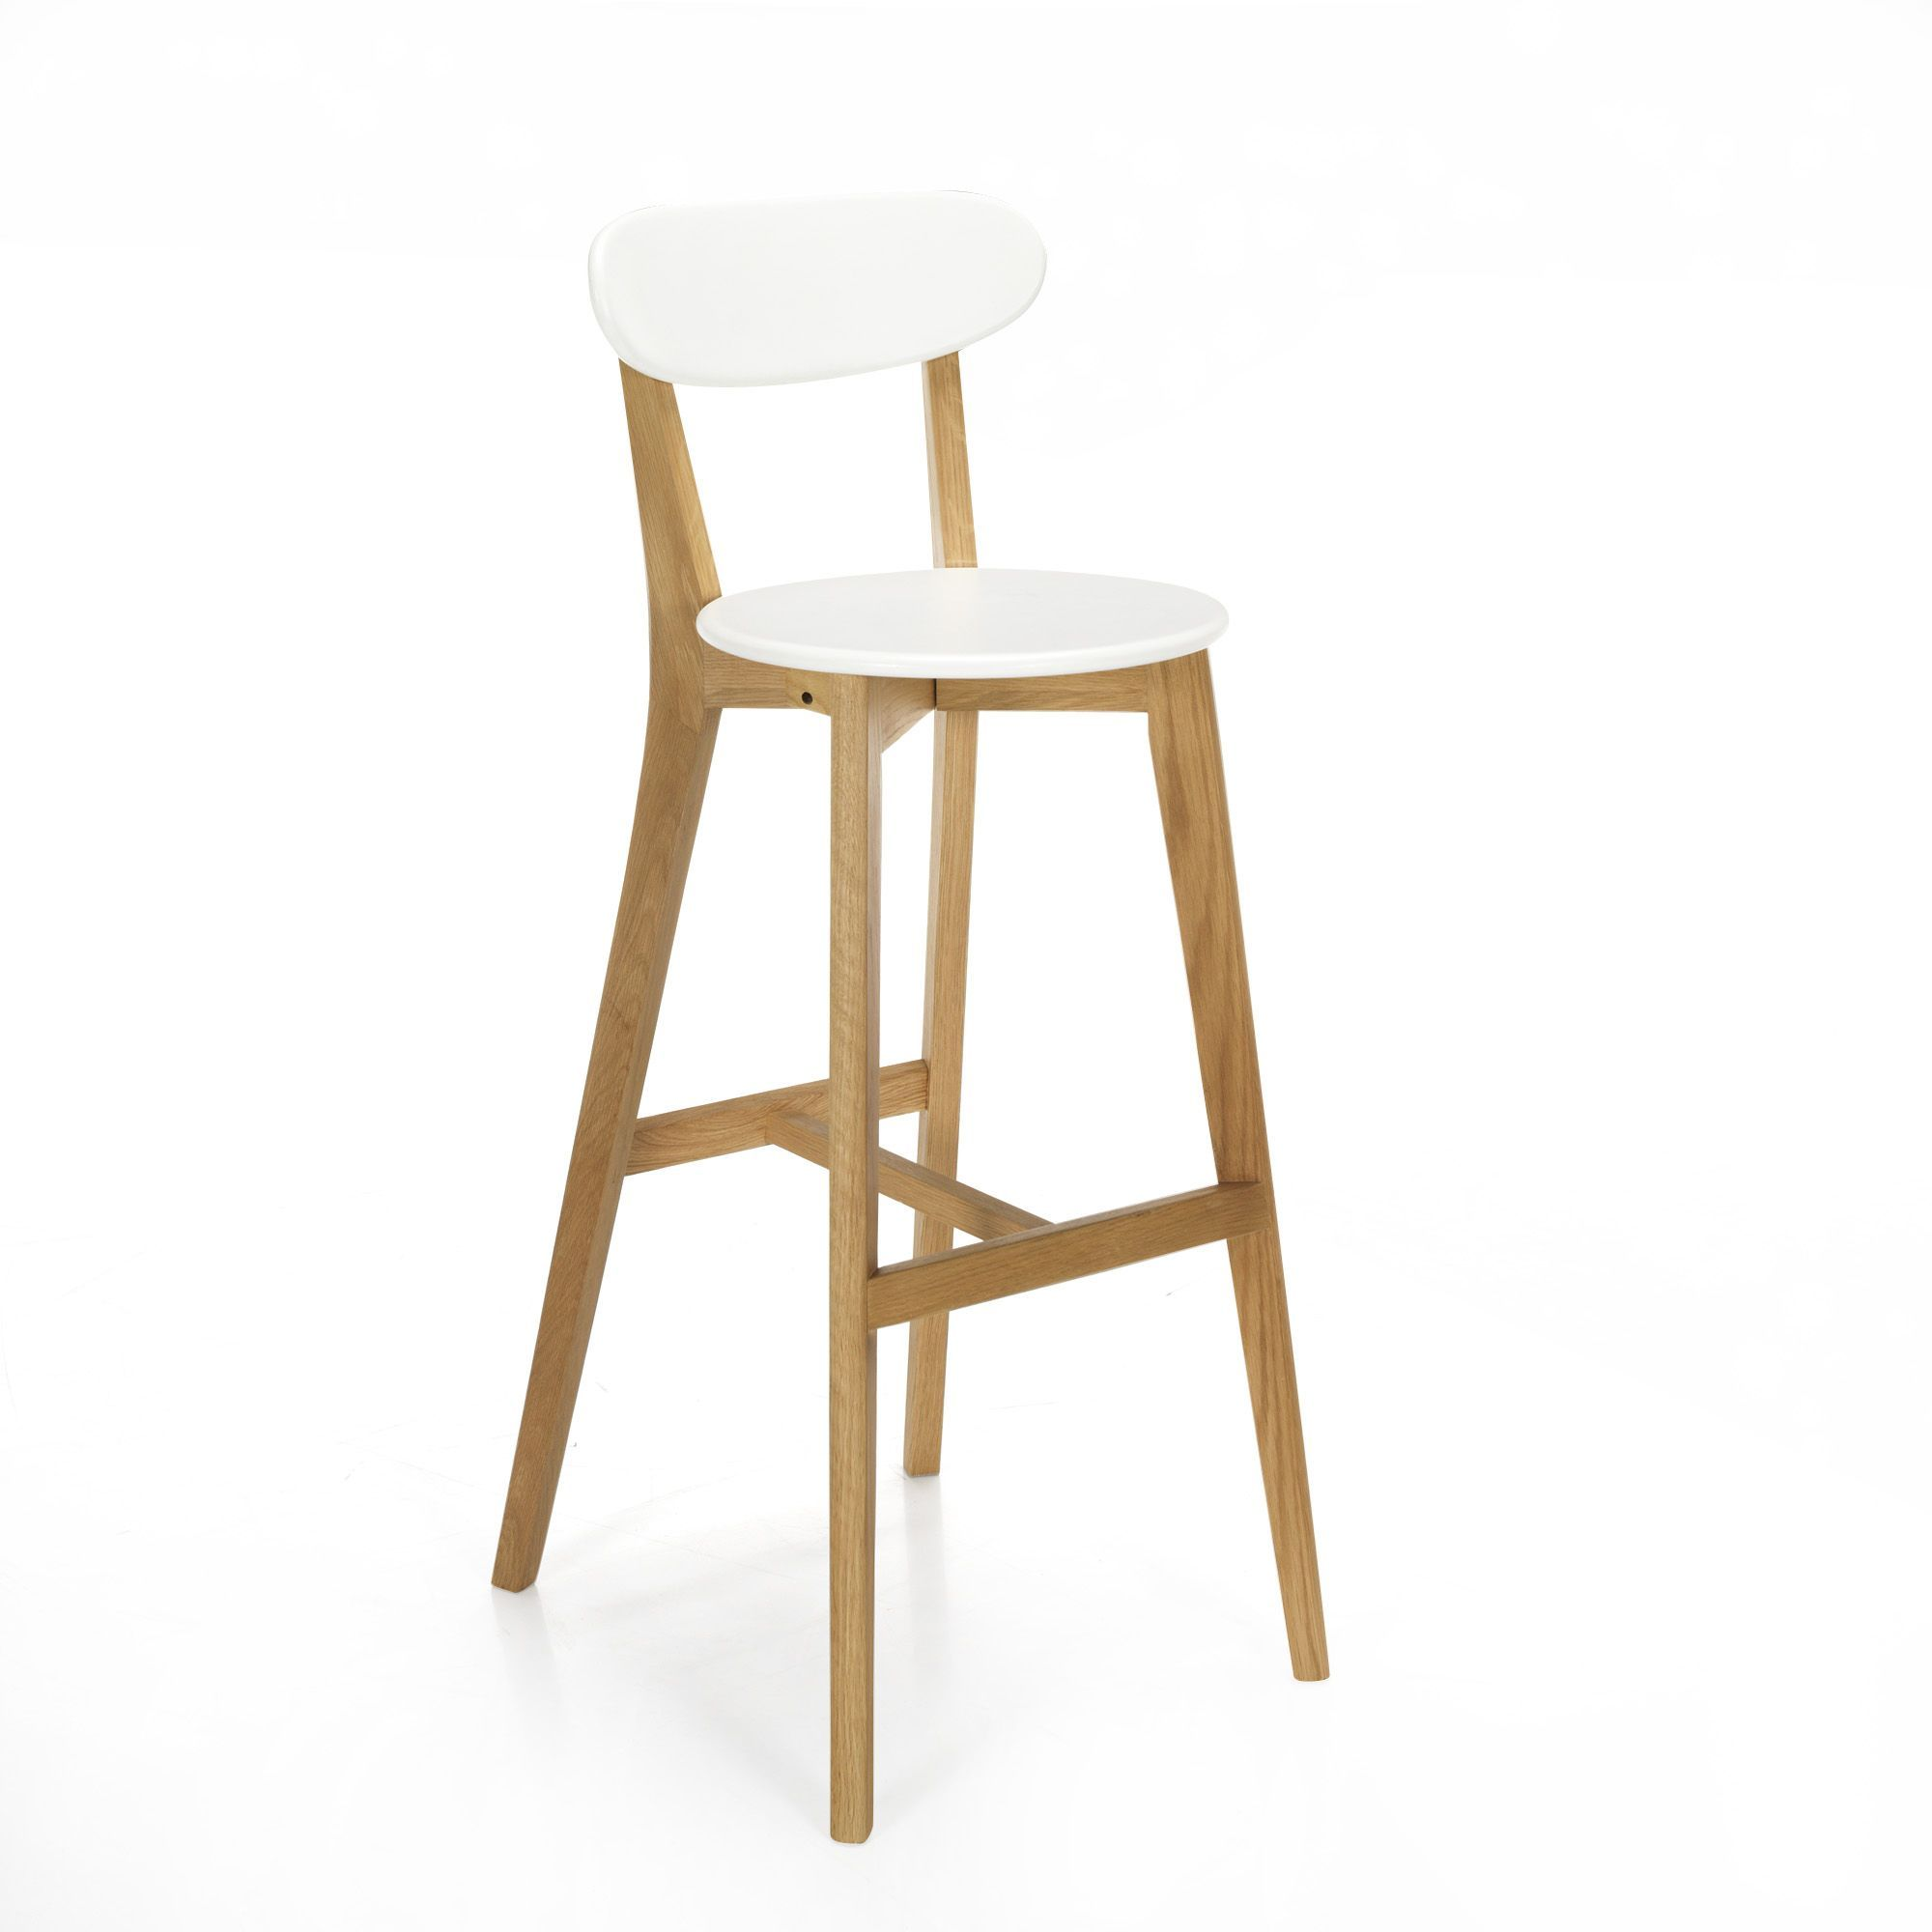 Mateo bain bar design and tables - Chaises bois et blanc ...